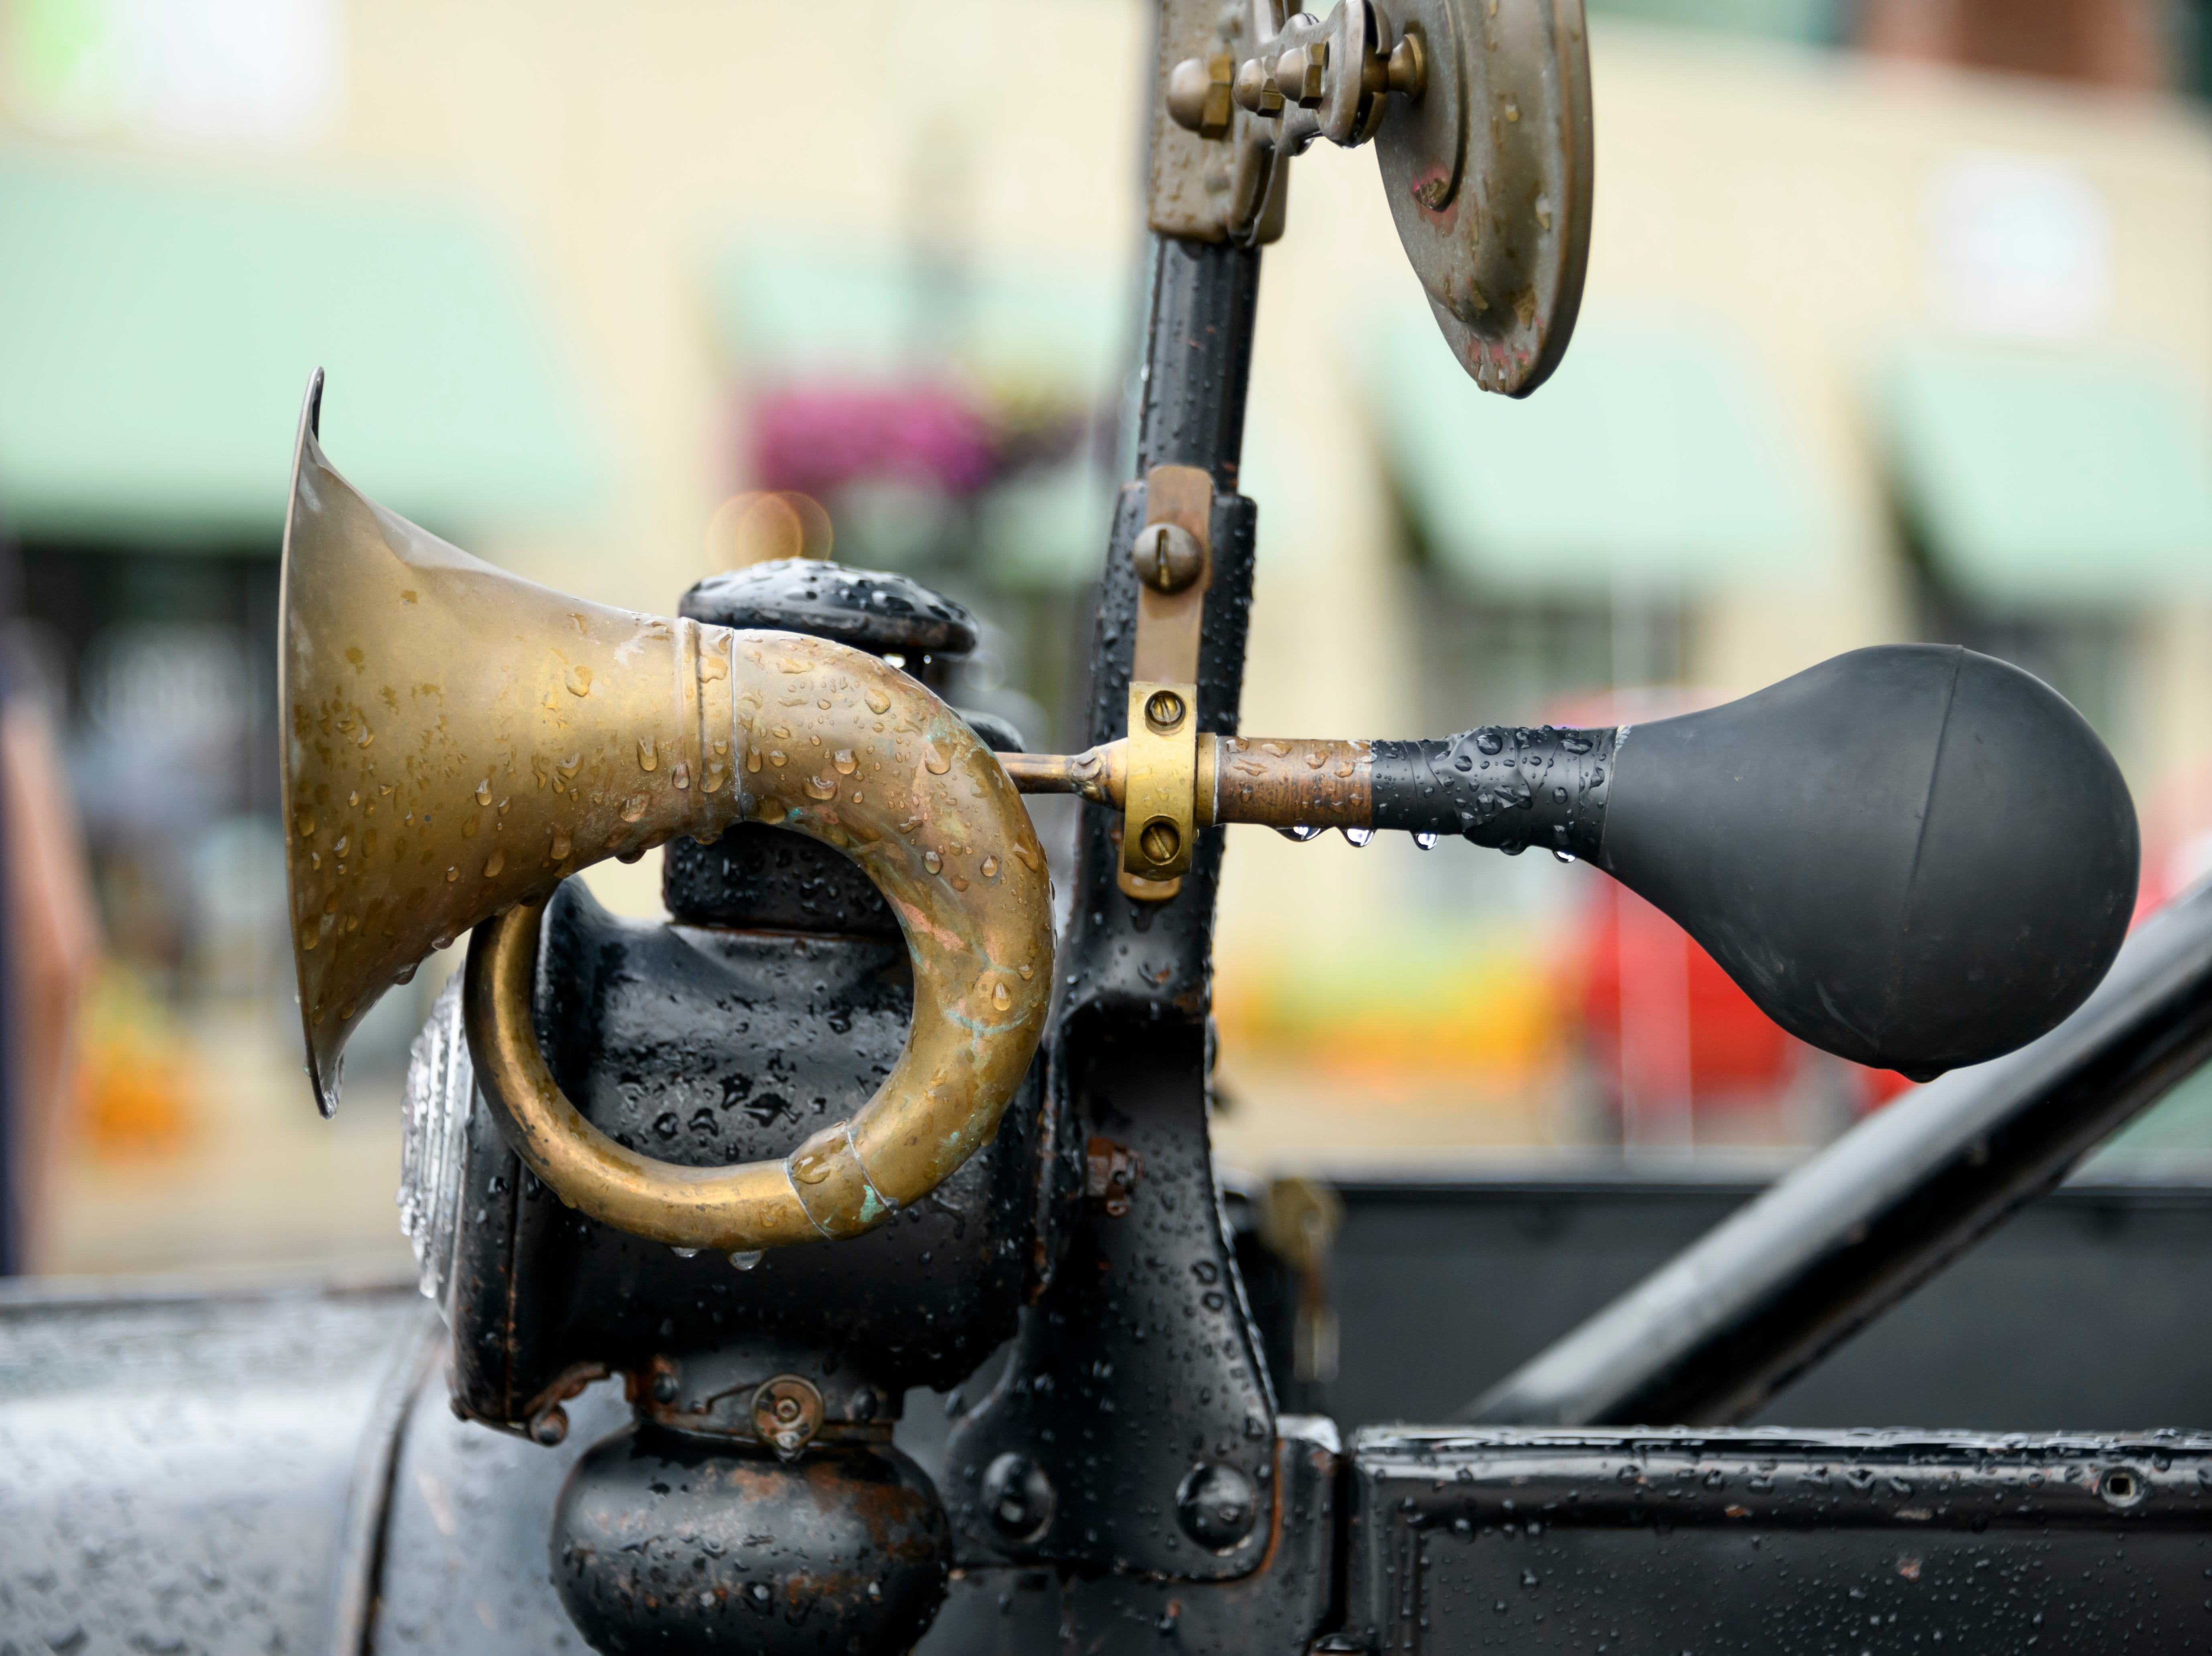 The horn of a 1919 Ford Model T owned by Brian Dowell, of St. Clair, has a steampunk vibe in the 18th annual Ferndale emergency vehicle parade, August 16, 2018.